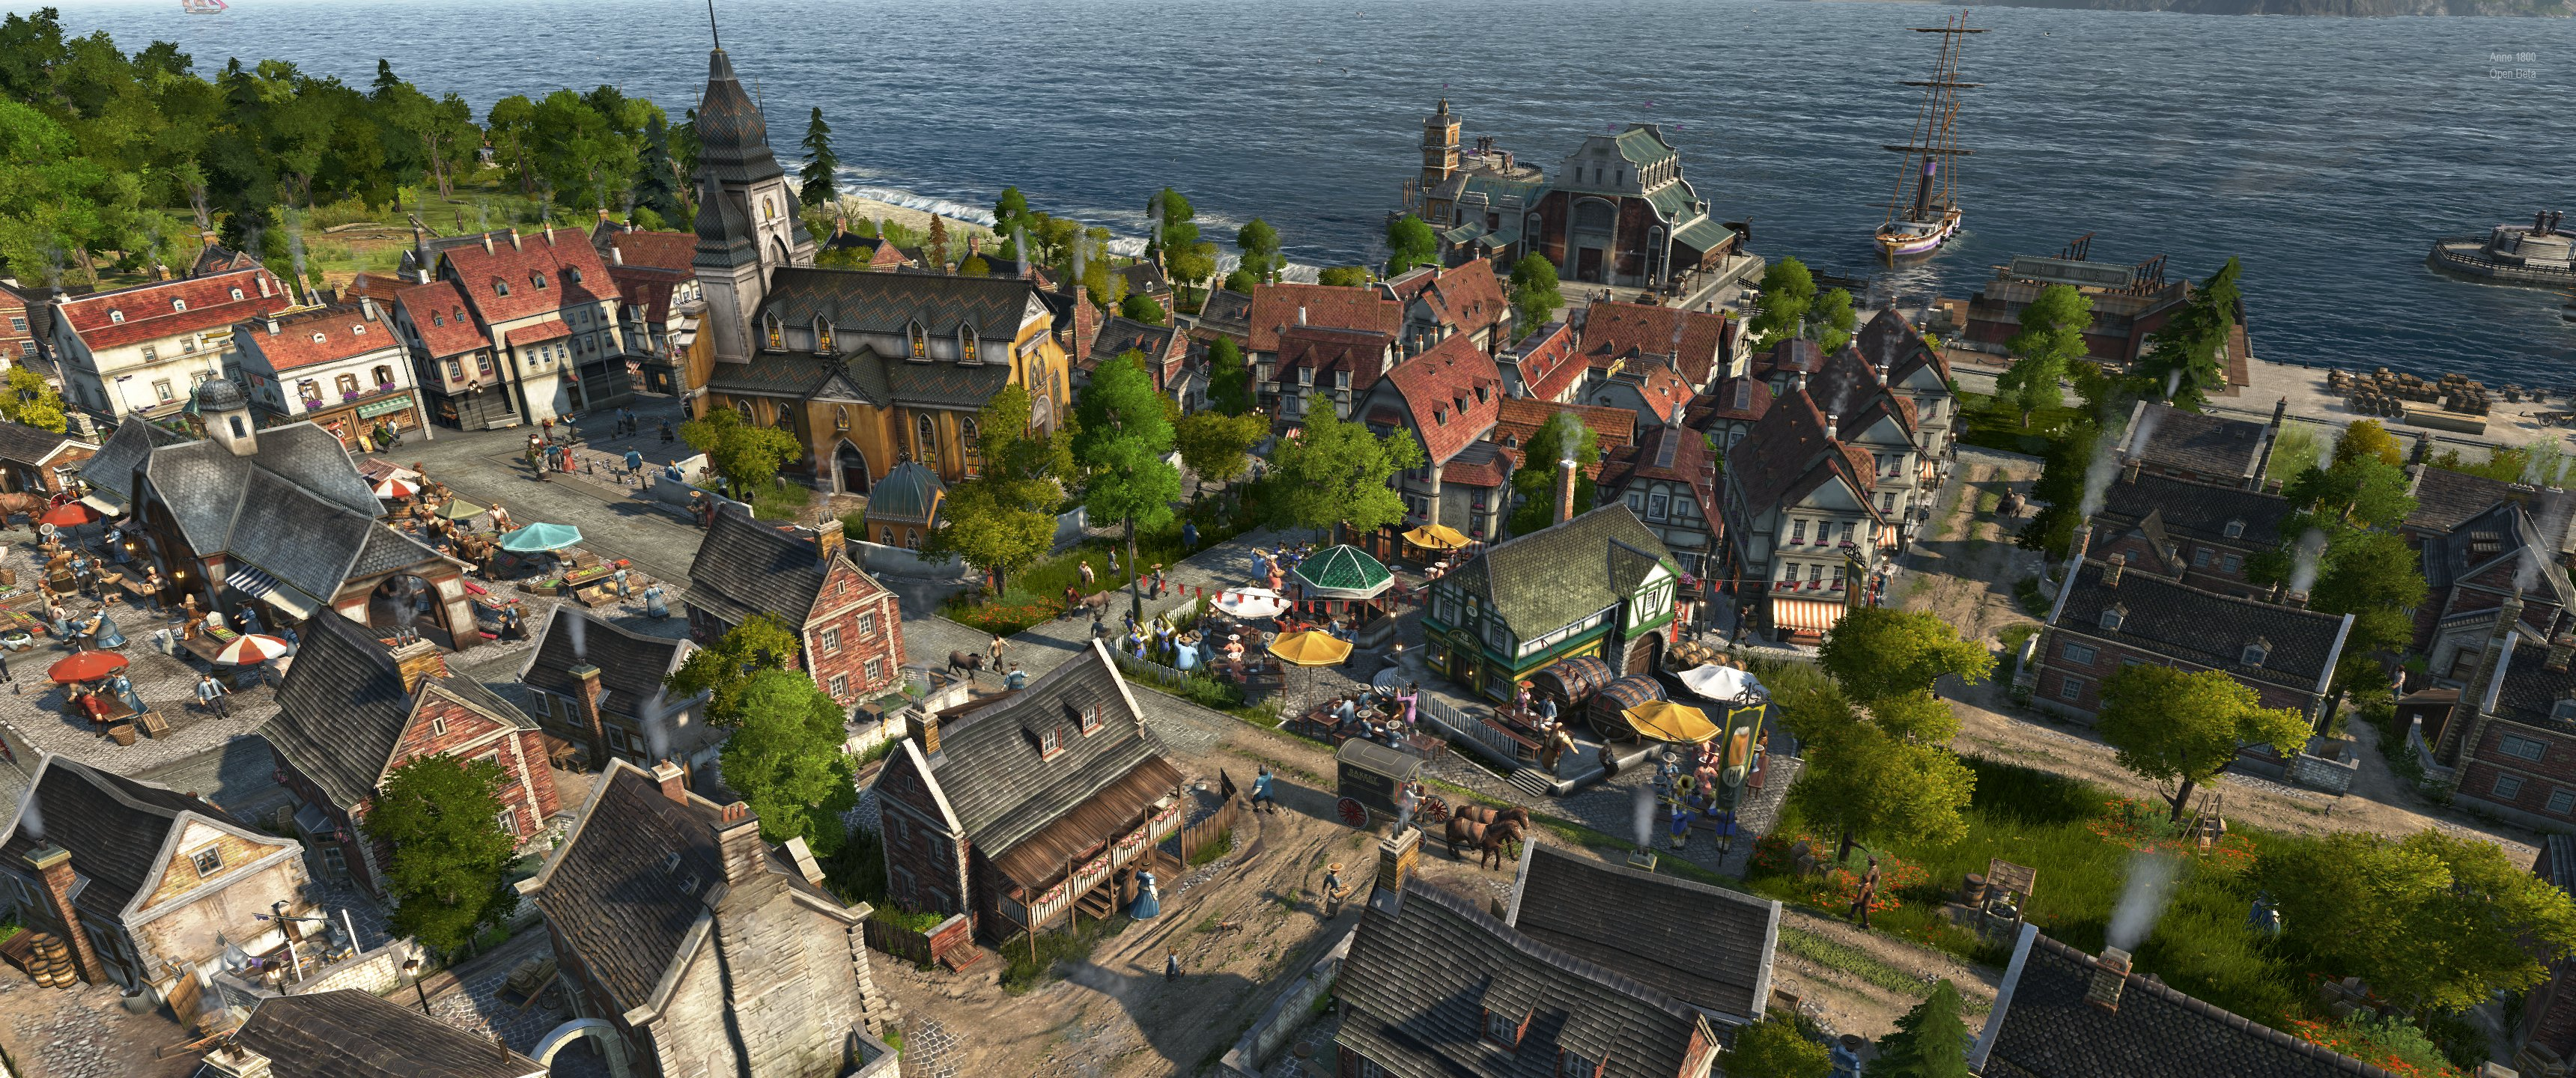 Anno-1800-Screenshot-2019.04.12-21.25.35.45